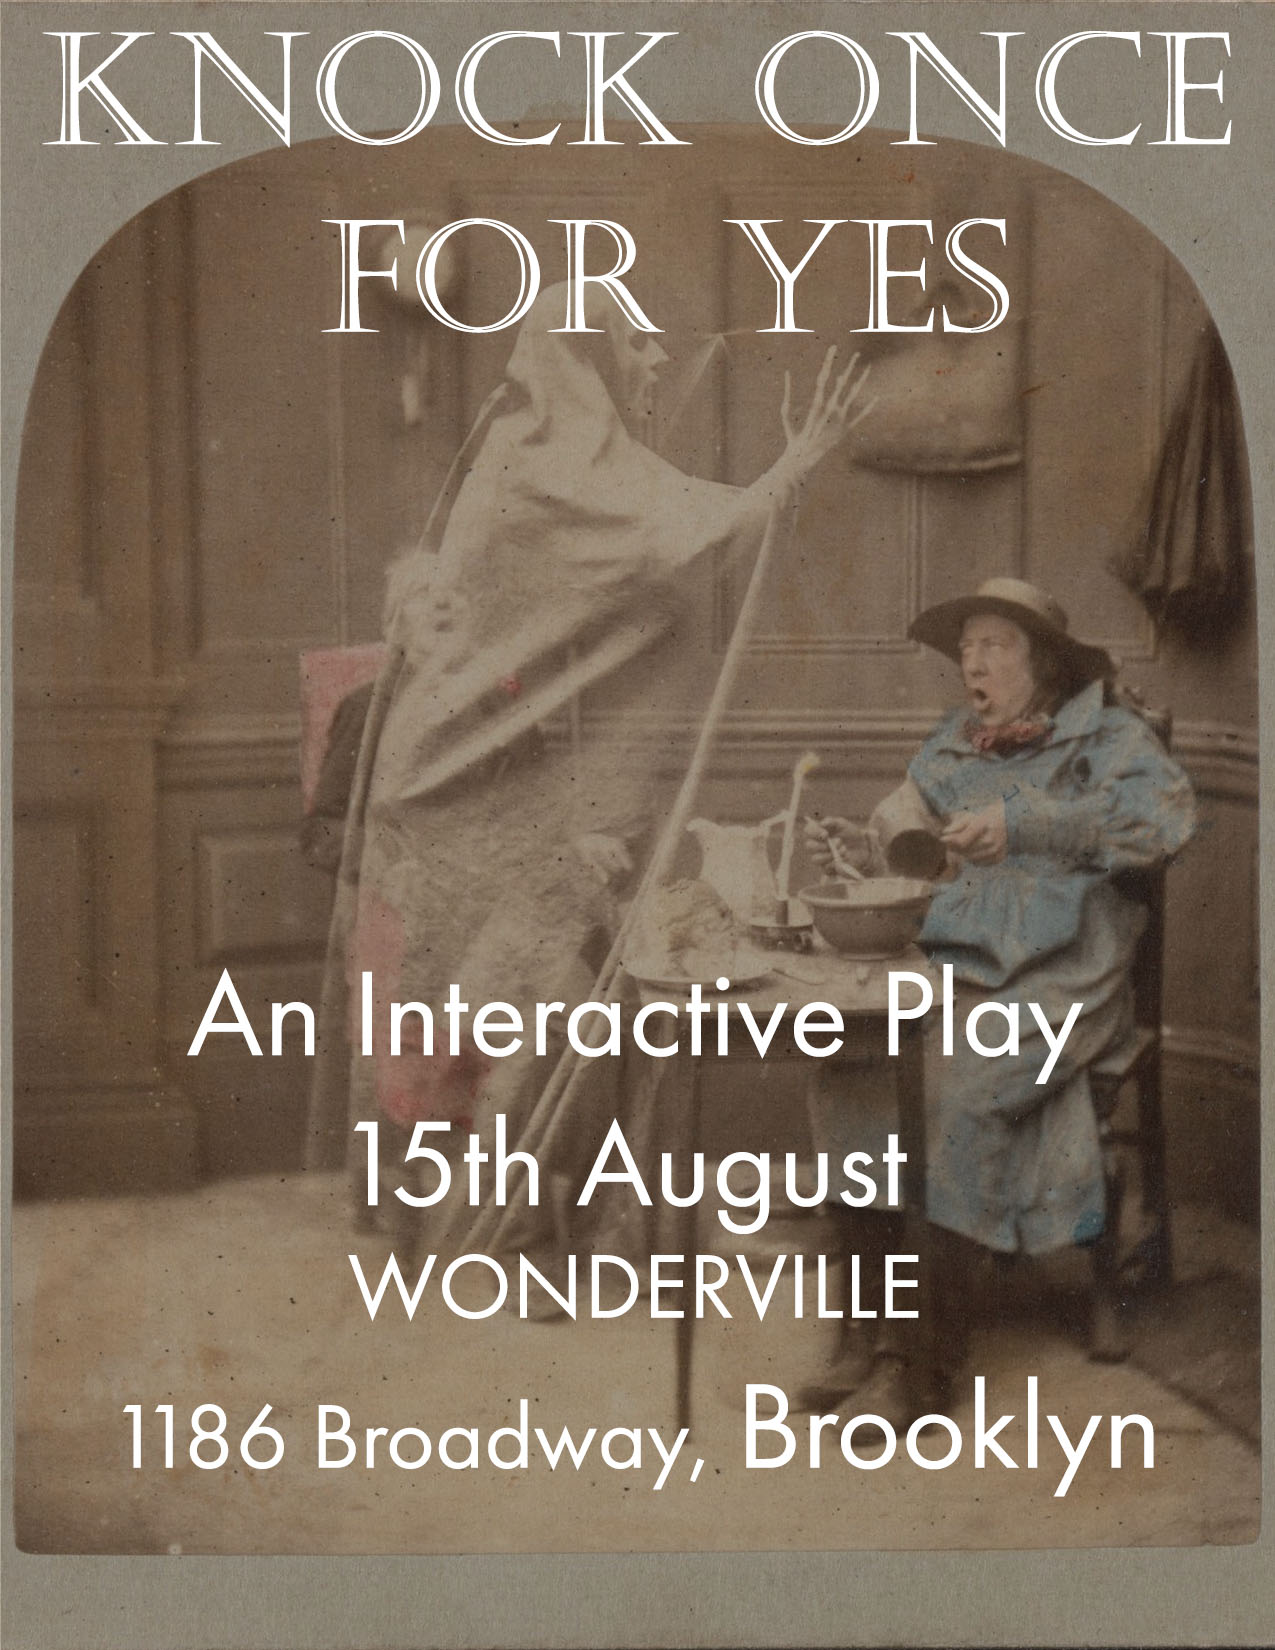 Tickets:  https://withfriends.co/Event/2147384/Knock_Once_For_Yes